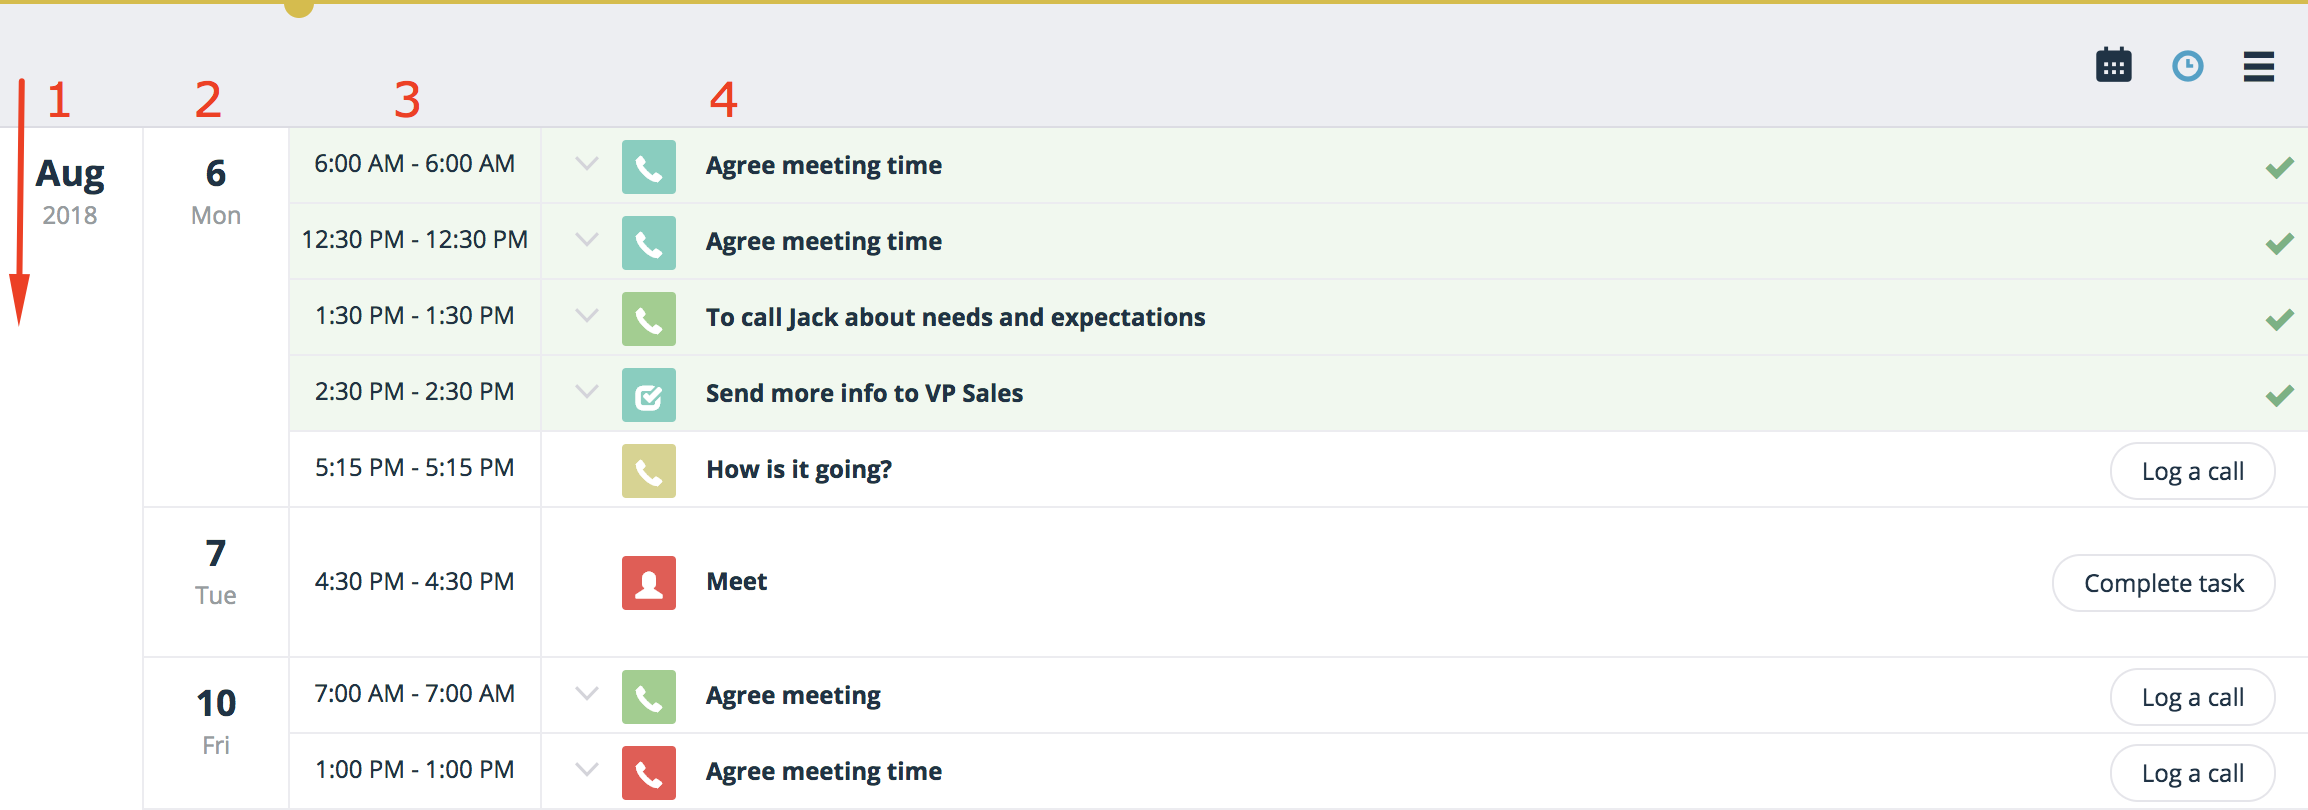 Agenda-view-Teamgate-CRM.png